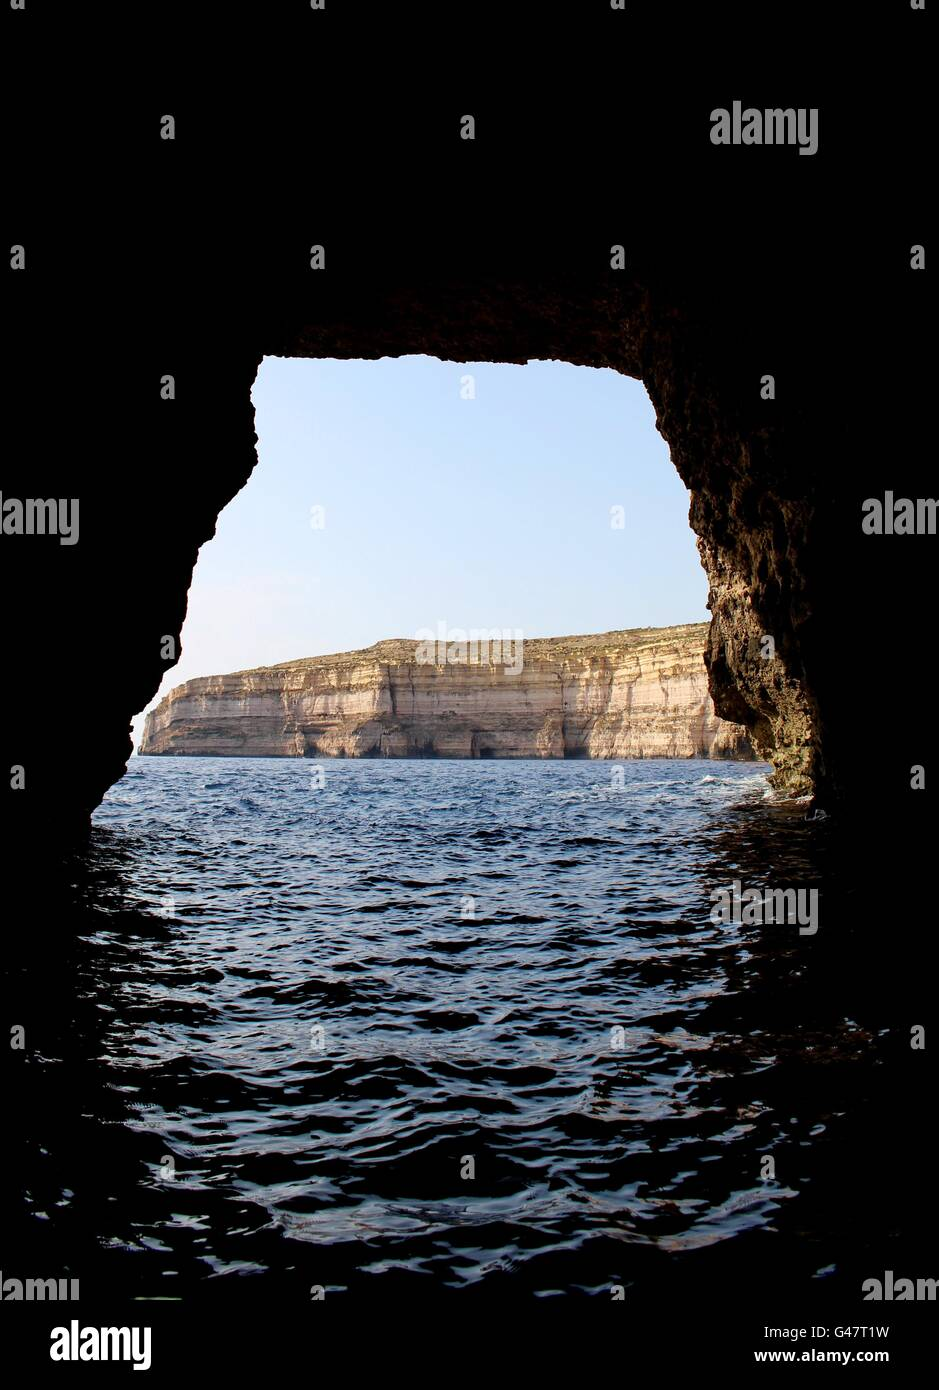 The journey through Gozo's limestone cliffs from the inland sea to the Mediterranean sea. - Stock Image